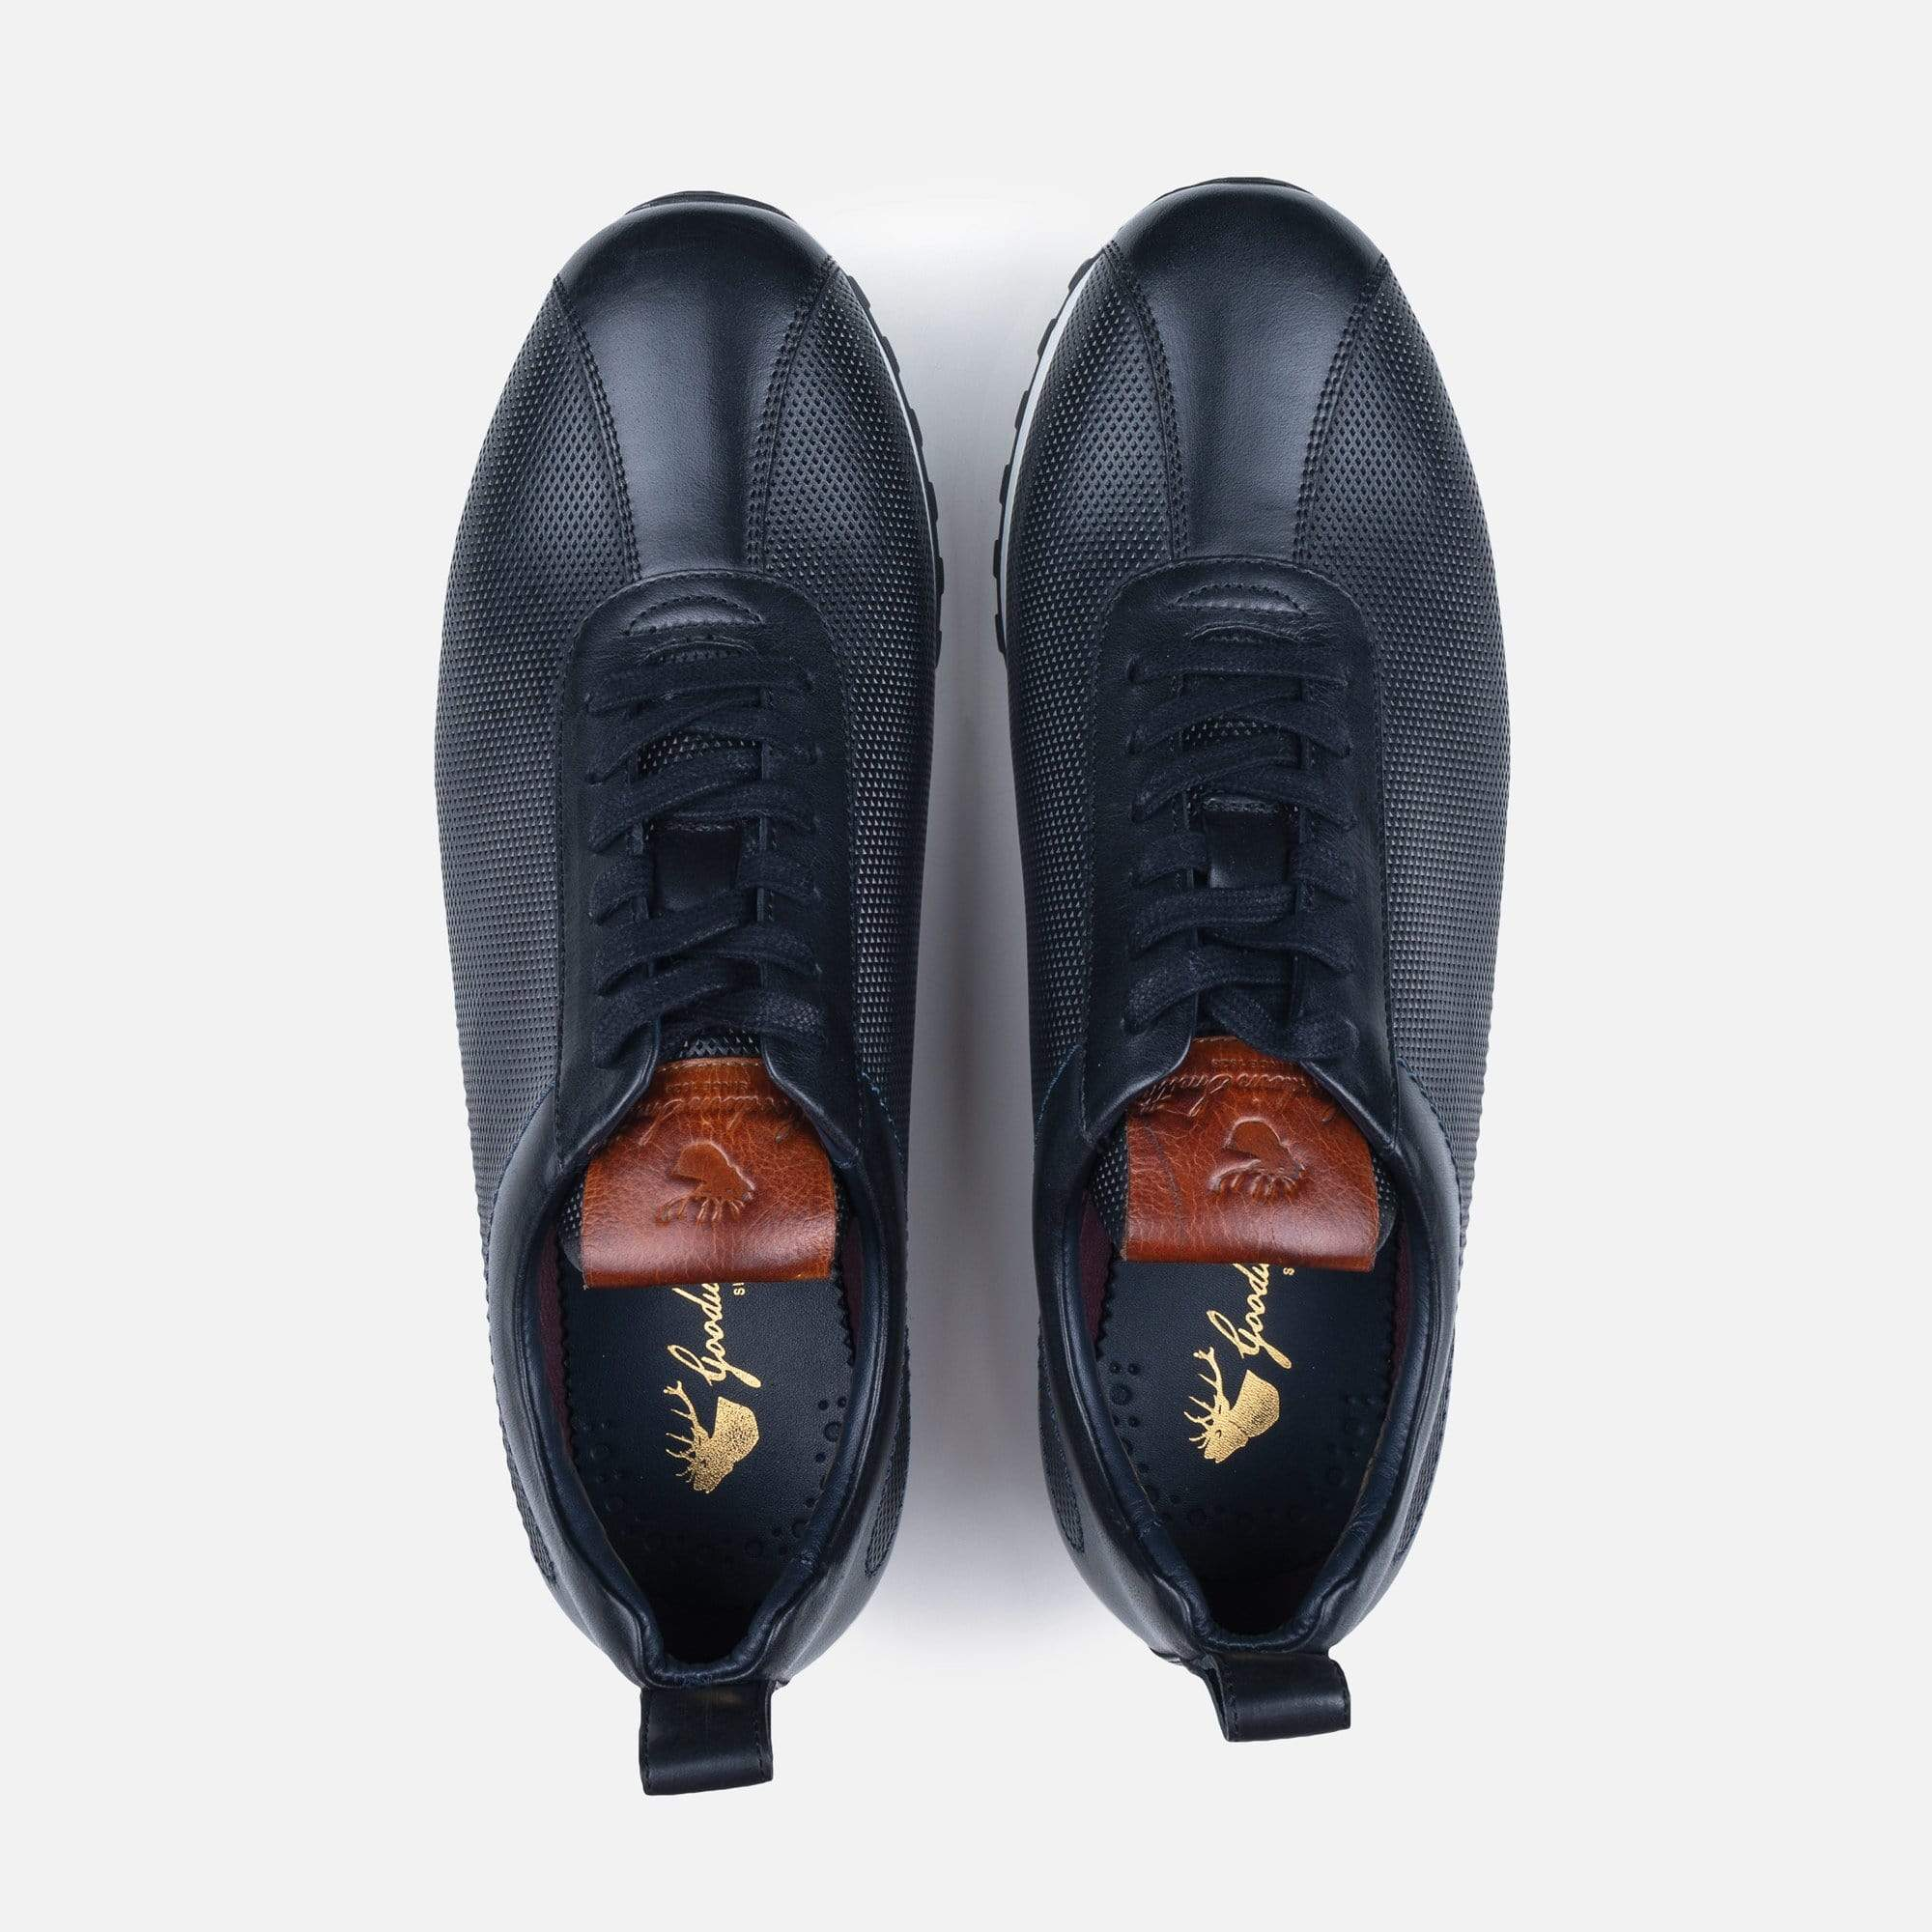 Leather padded collar lining and stag printed canvas lining in black leather trainer